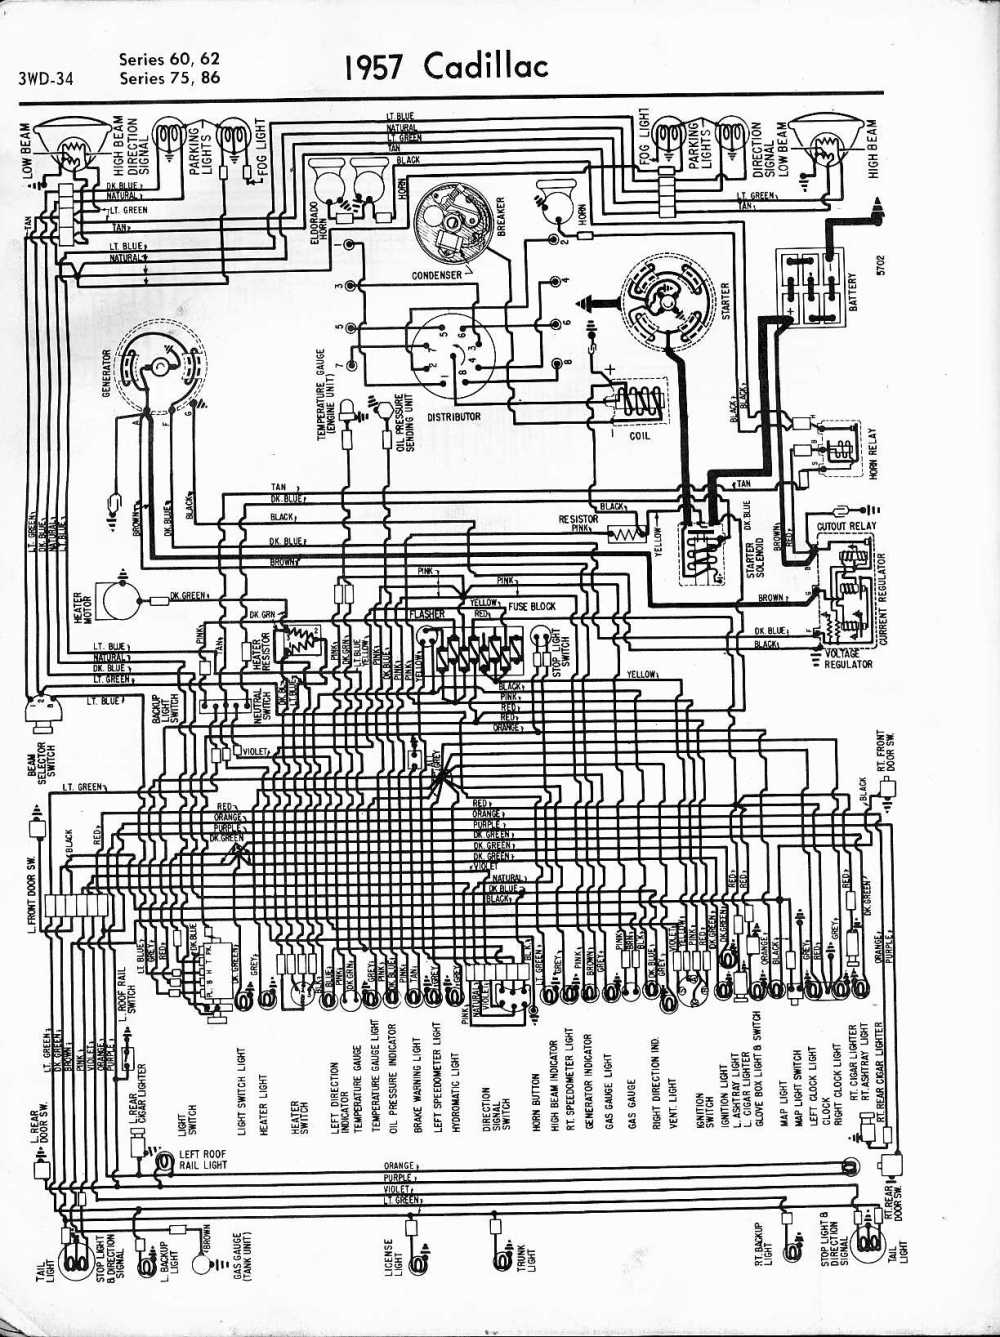 medium resolution of rover 75 rear light wiring diagram wiring library single light switch wiring diagram 1957 series 60